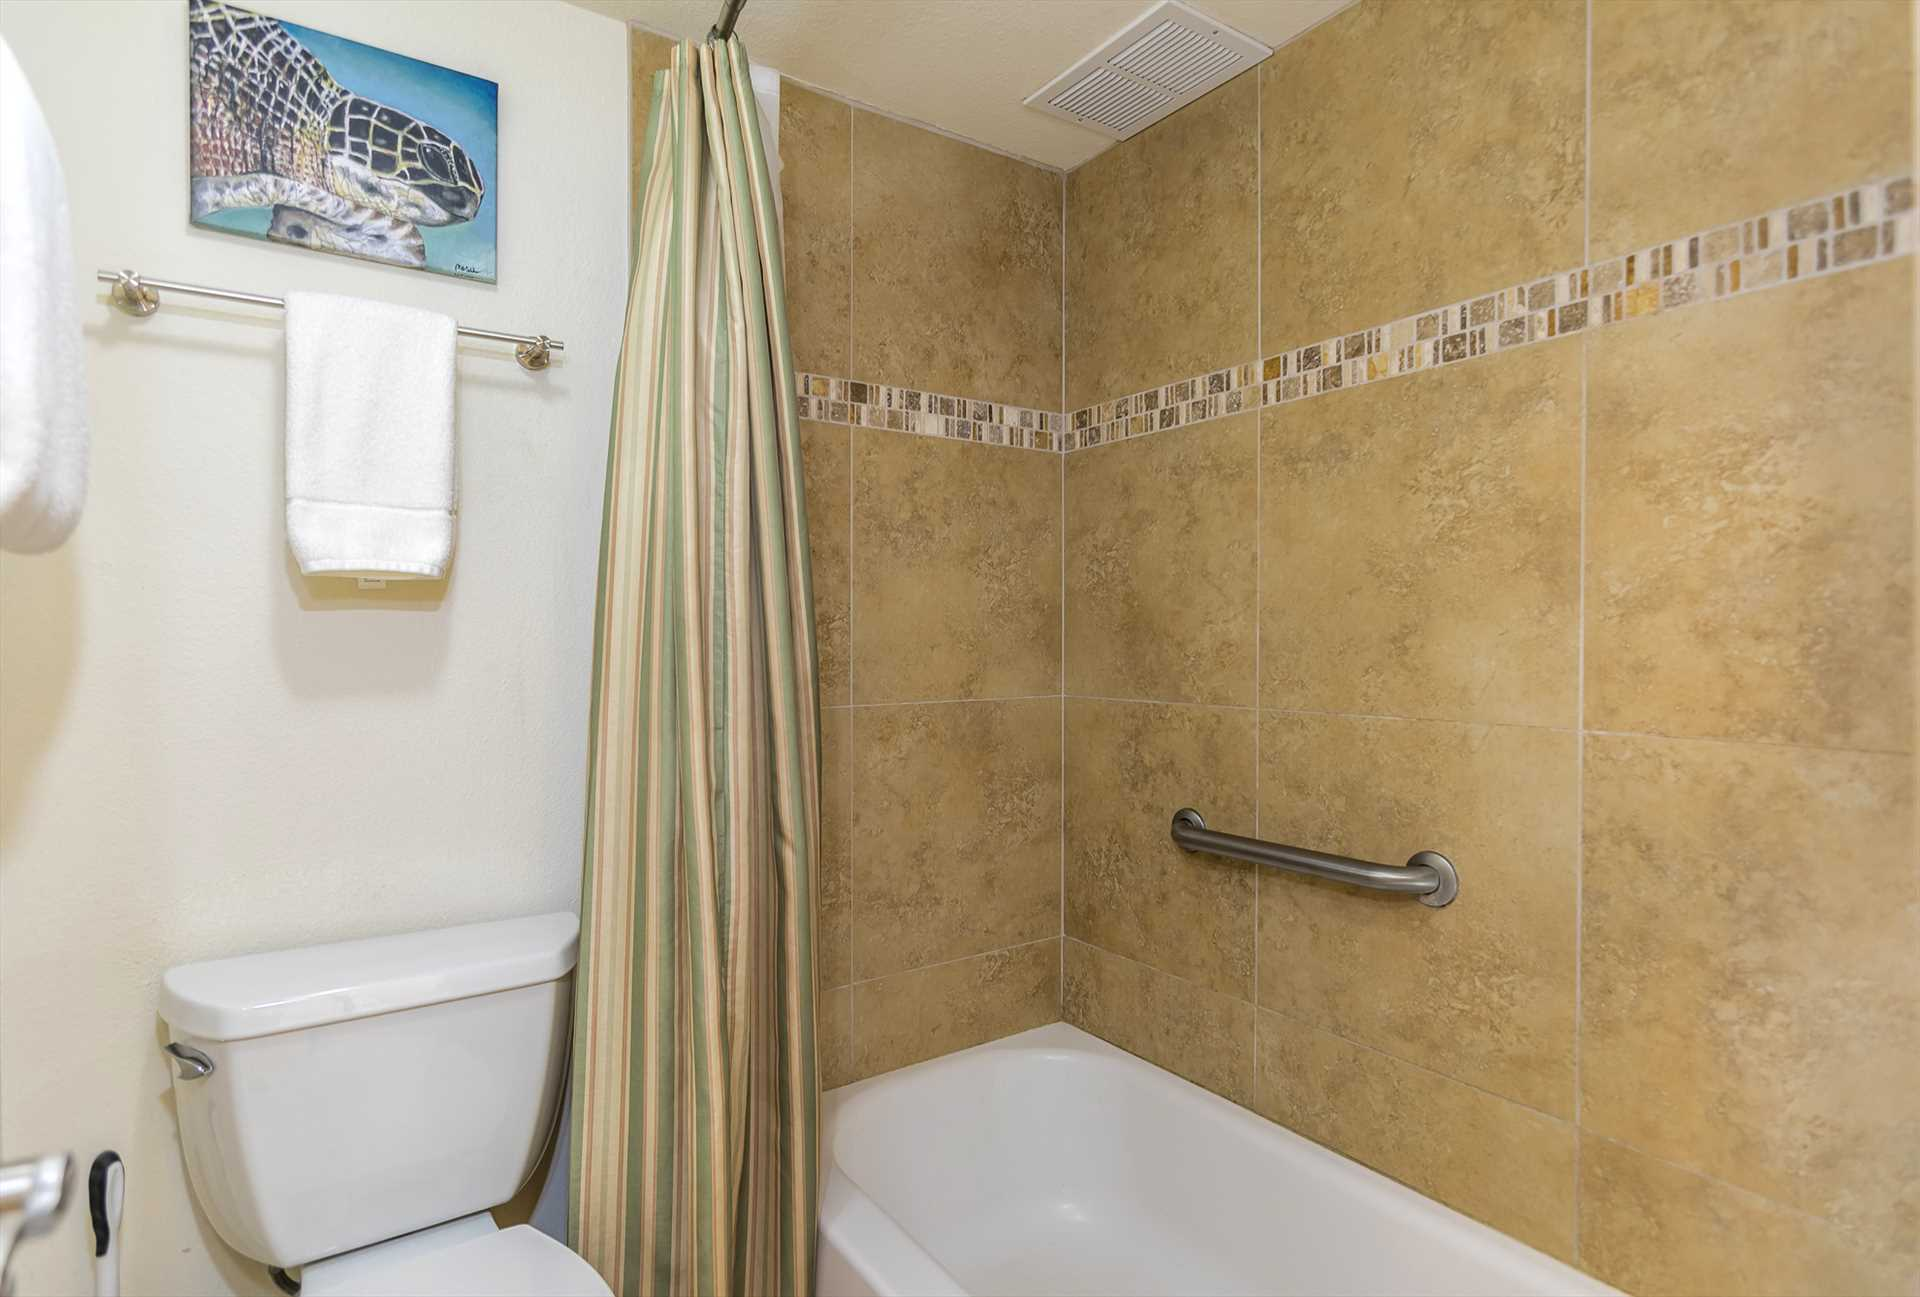 Bathtub and shower combination in bathroom